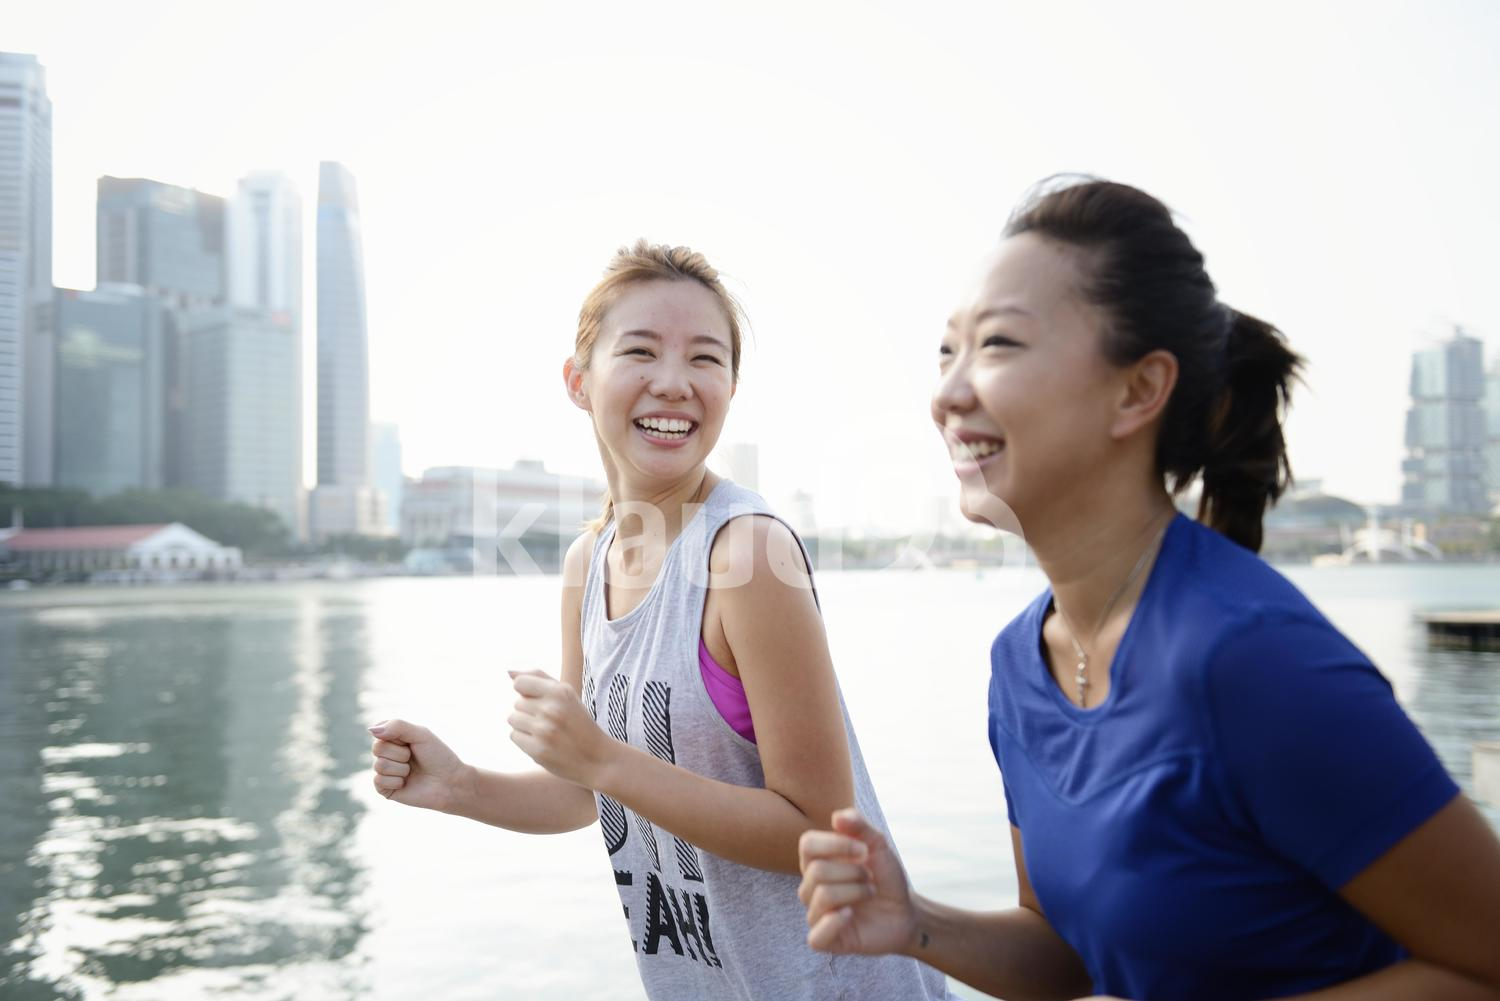 Happy Women out for a run at Marina Bay